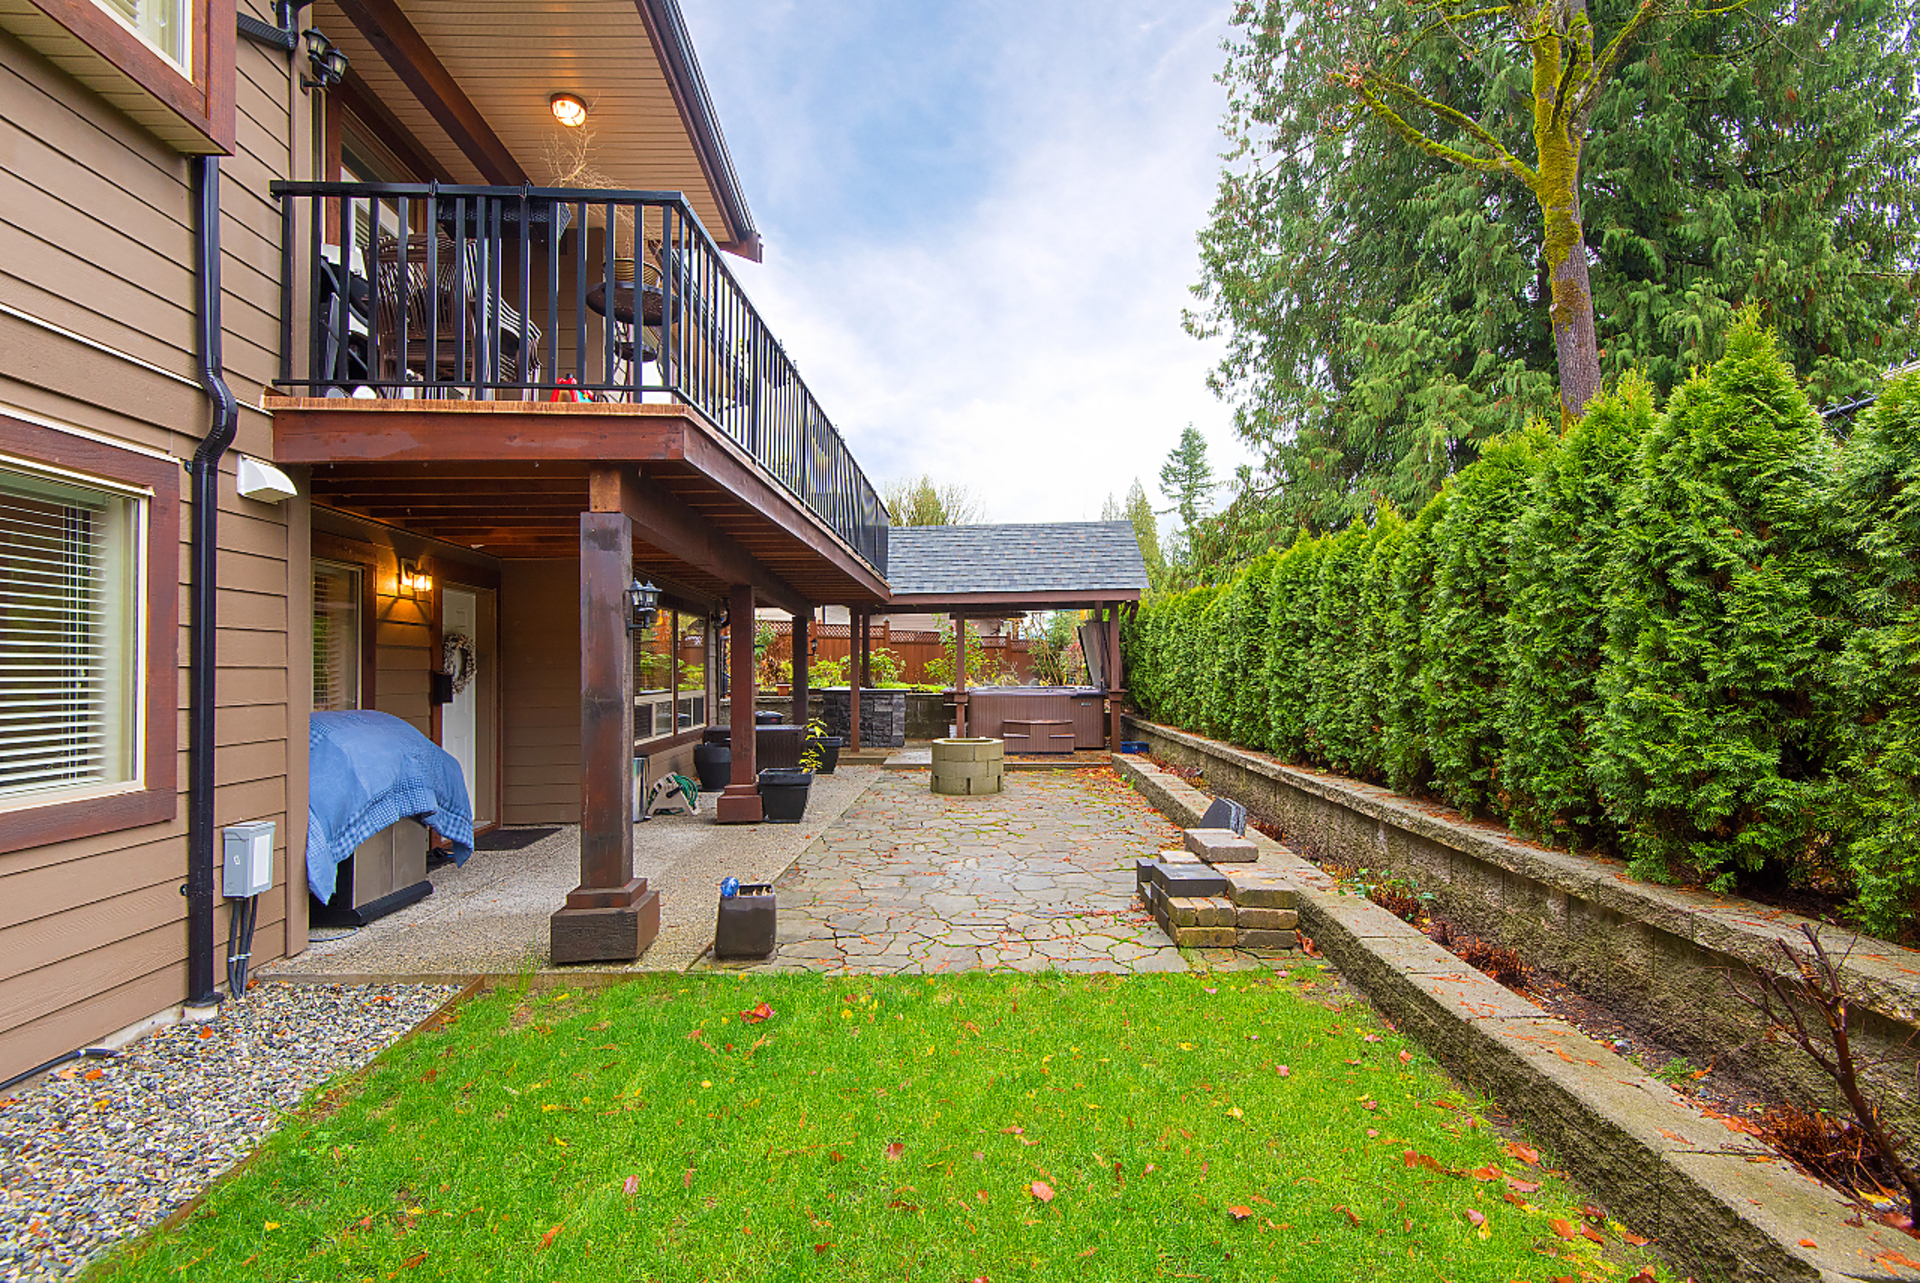 043 at 1211 Burkemont Place, Burke Mountain, Coquitlam